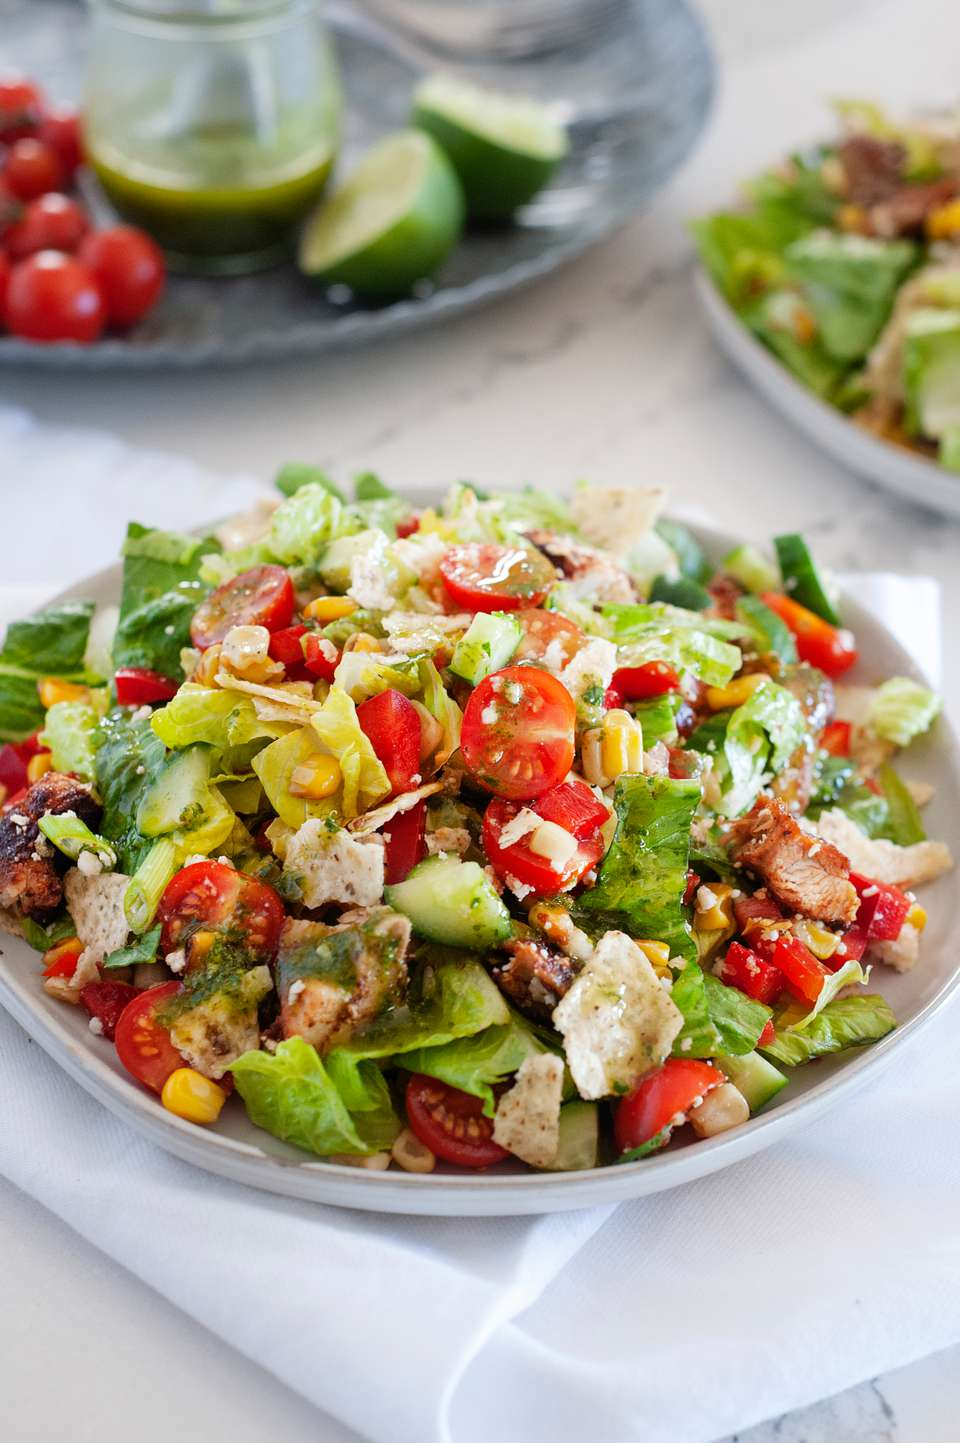 Southwestern Chopped Chicken Salad with Cilantro Lime Dressing